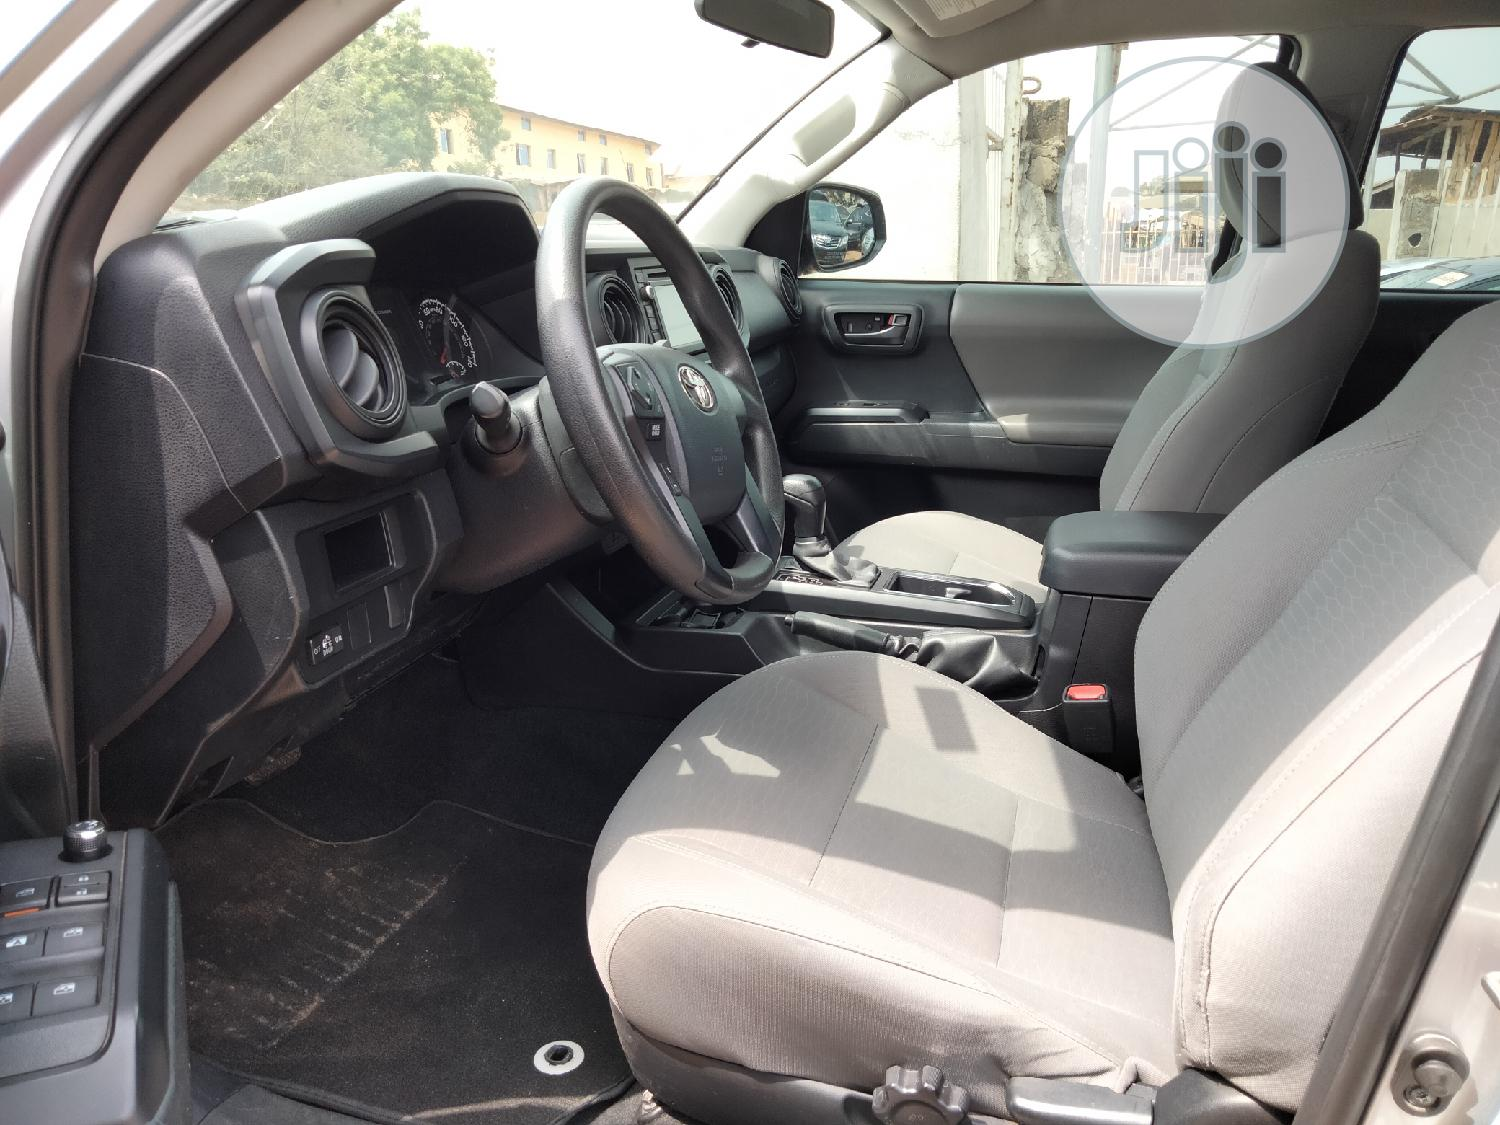 Toyota Tacoma 2016 4dr Double Cab Gray | Cars for sale in Ibadan, Oyo State, Nigeria